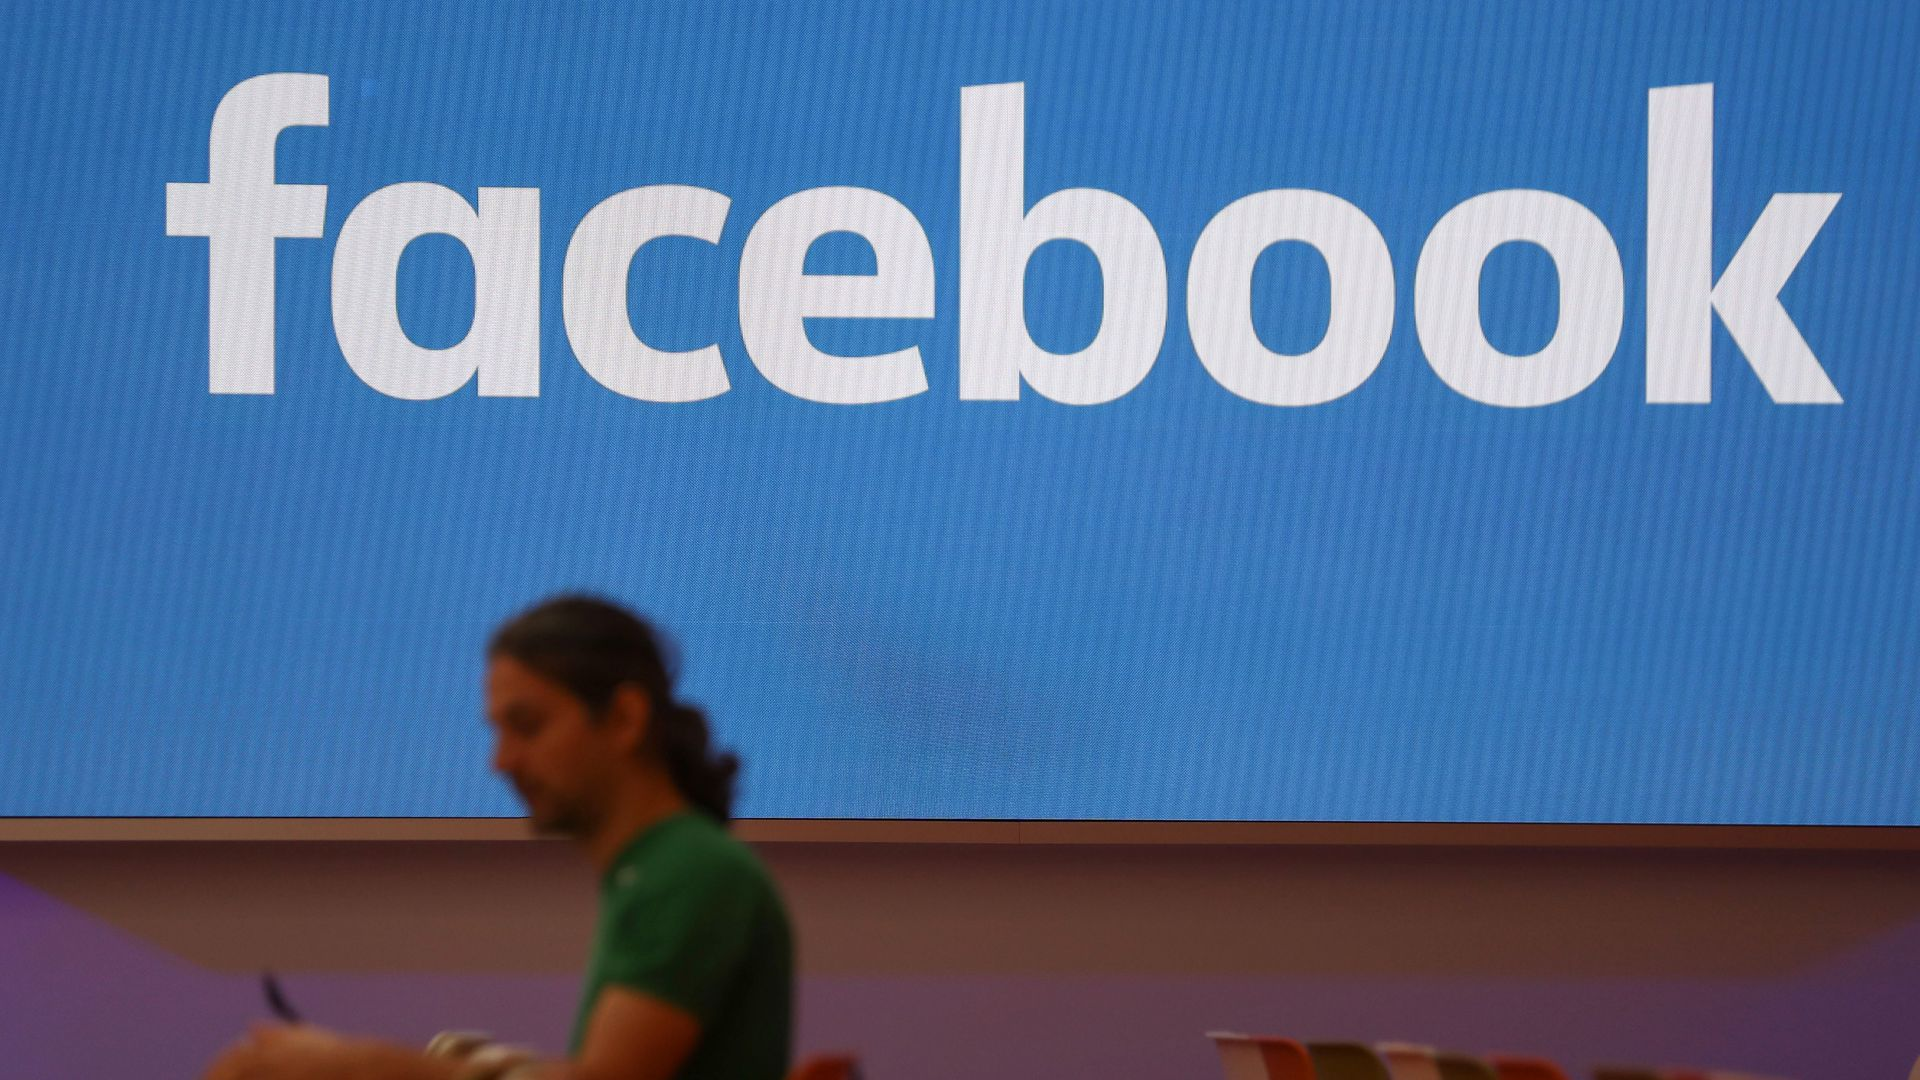 A man wearing a green t-shirt sits in front of a Facebook sign